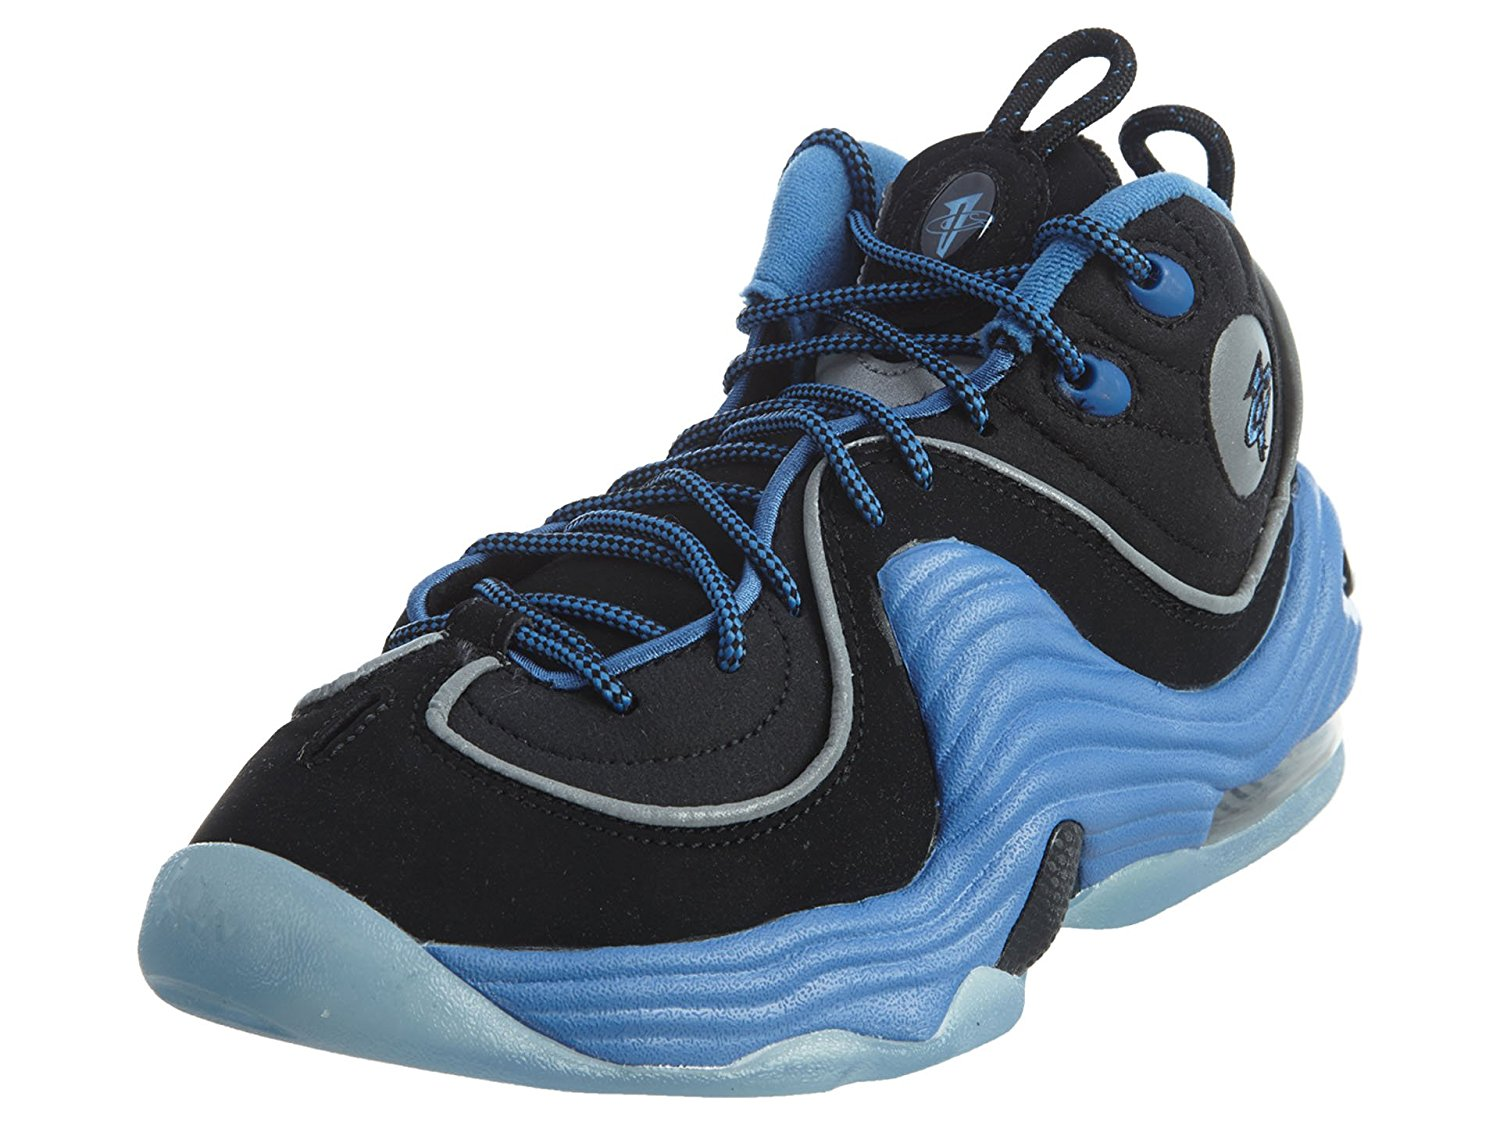 the latest 9728c a18c0 Get Quotations · Nike AIR PENNY II (GS) boys basketball-shoes